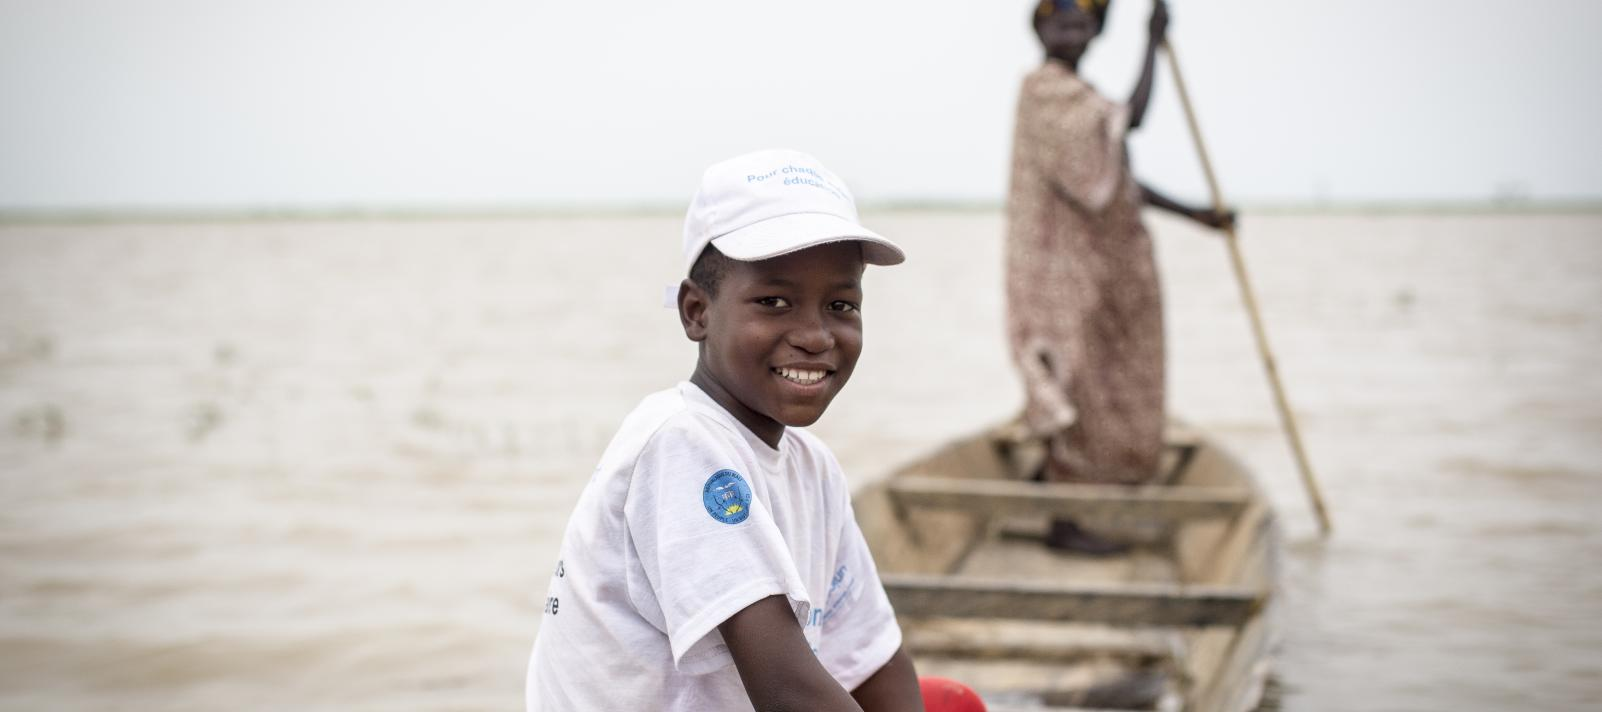 Alou Keïta, 11 years old, student in grade 6, is child ambassador of the new school year. With his friends, he takes a canoe to go to the other side of the Niger River to sensitize parents.